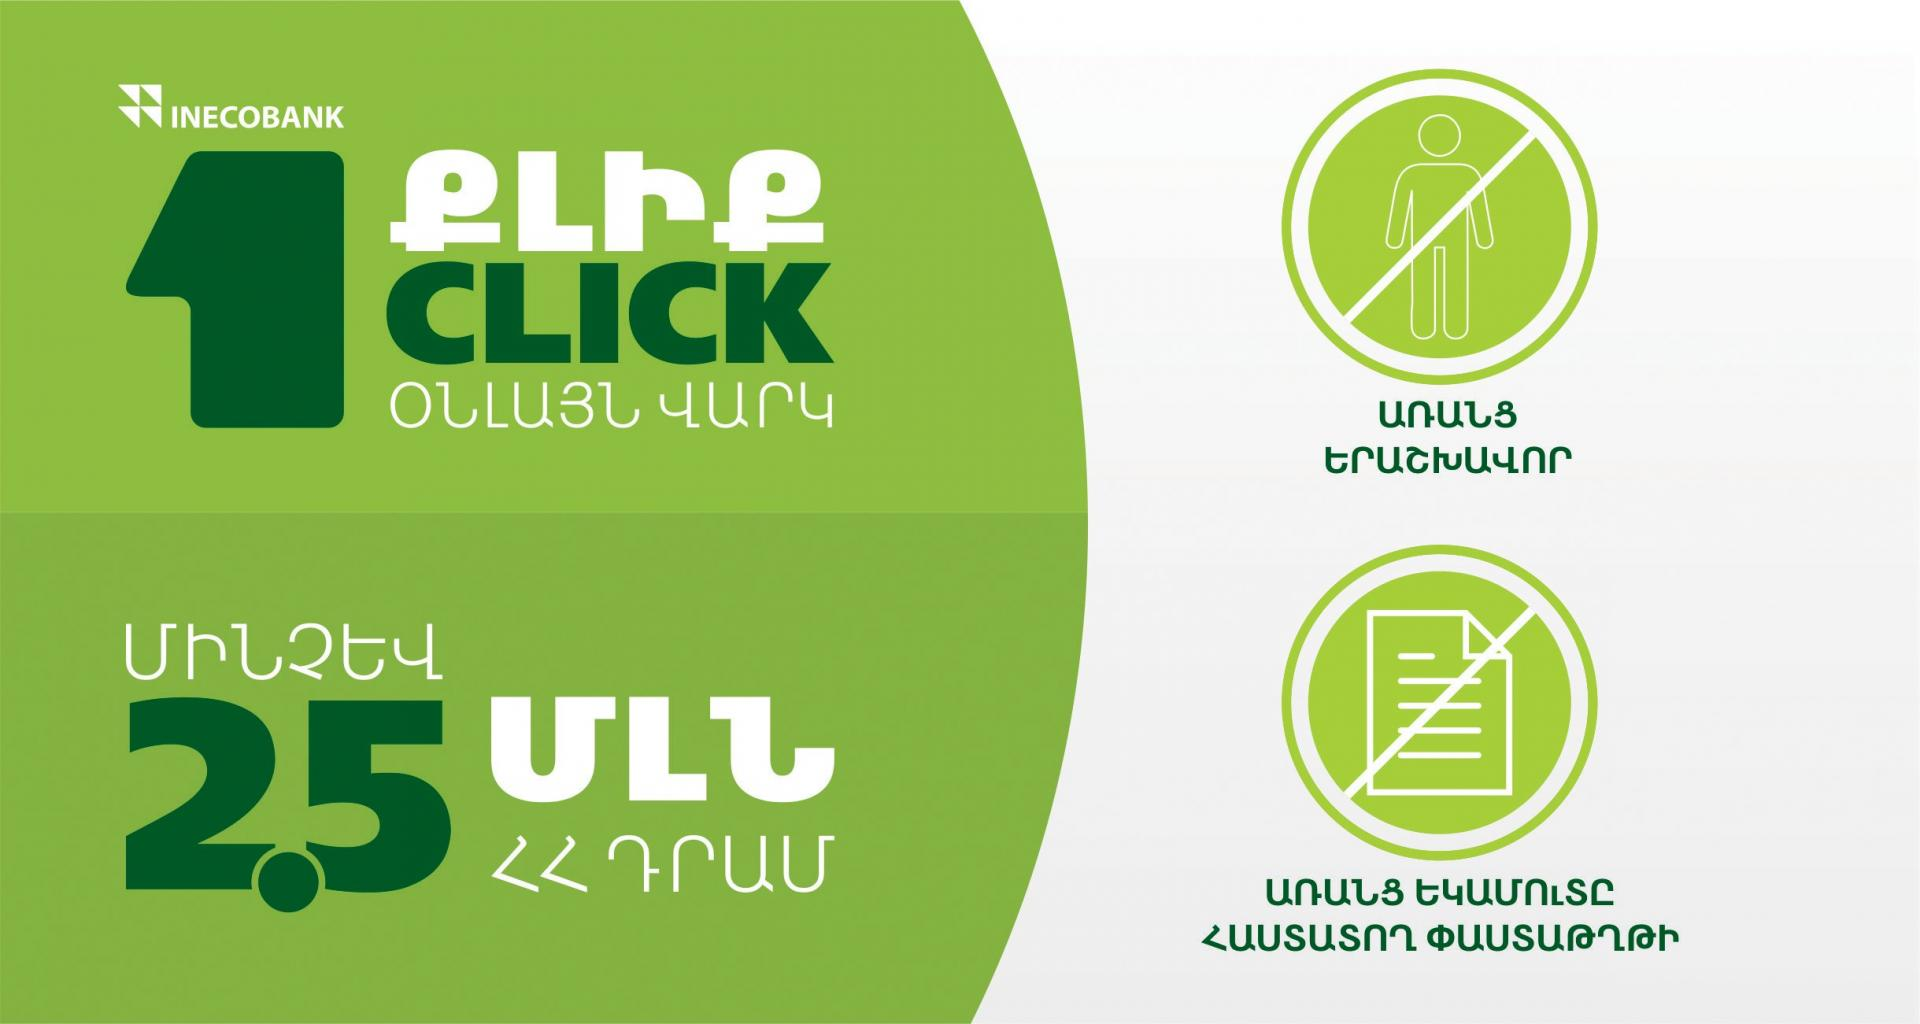 One Click Loan >> 1 Click Online Loan Sets Limit Up To 2 5 Million Amd Bankinfo